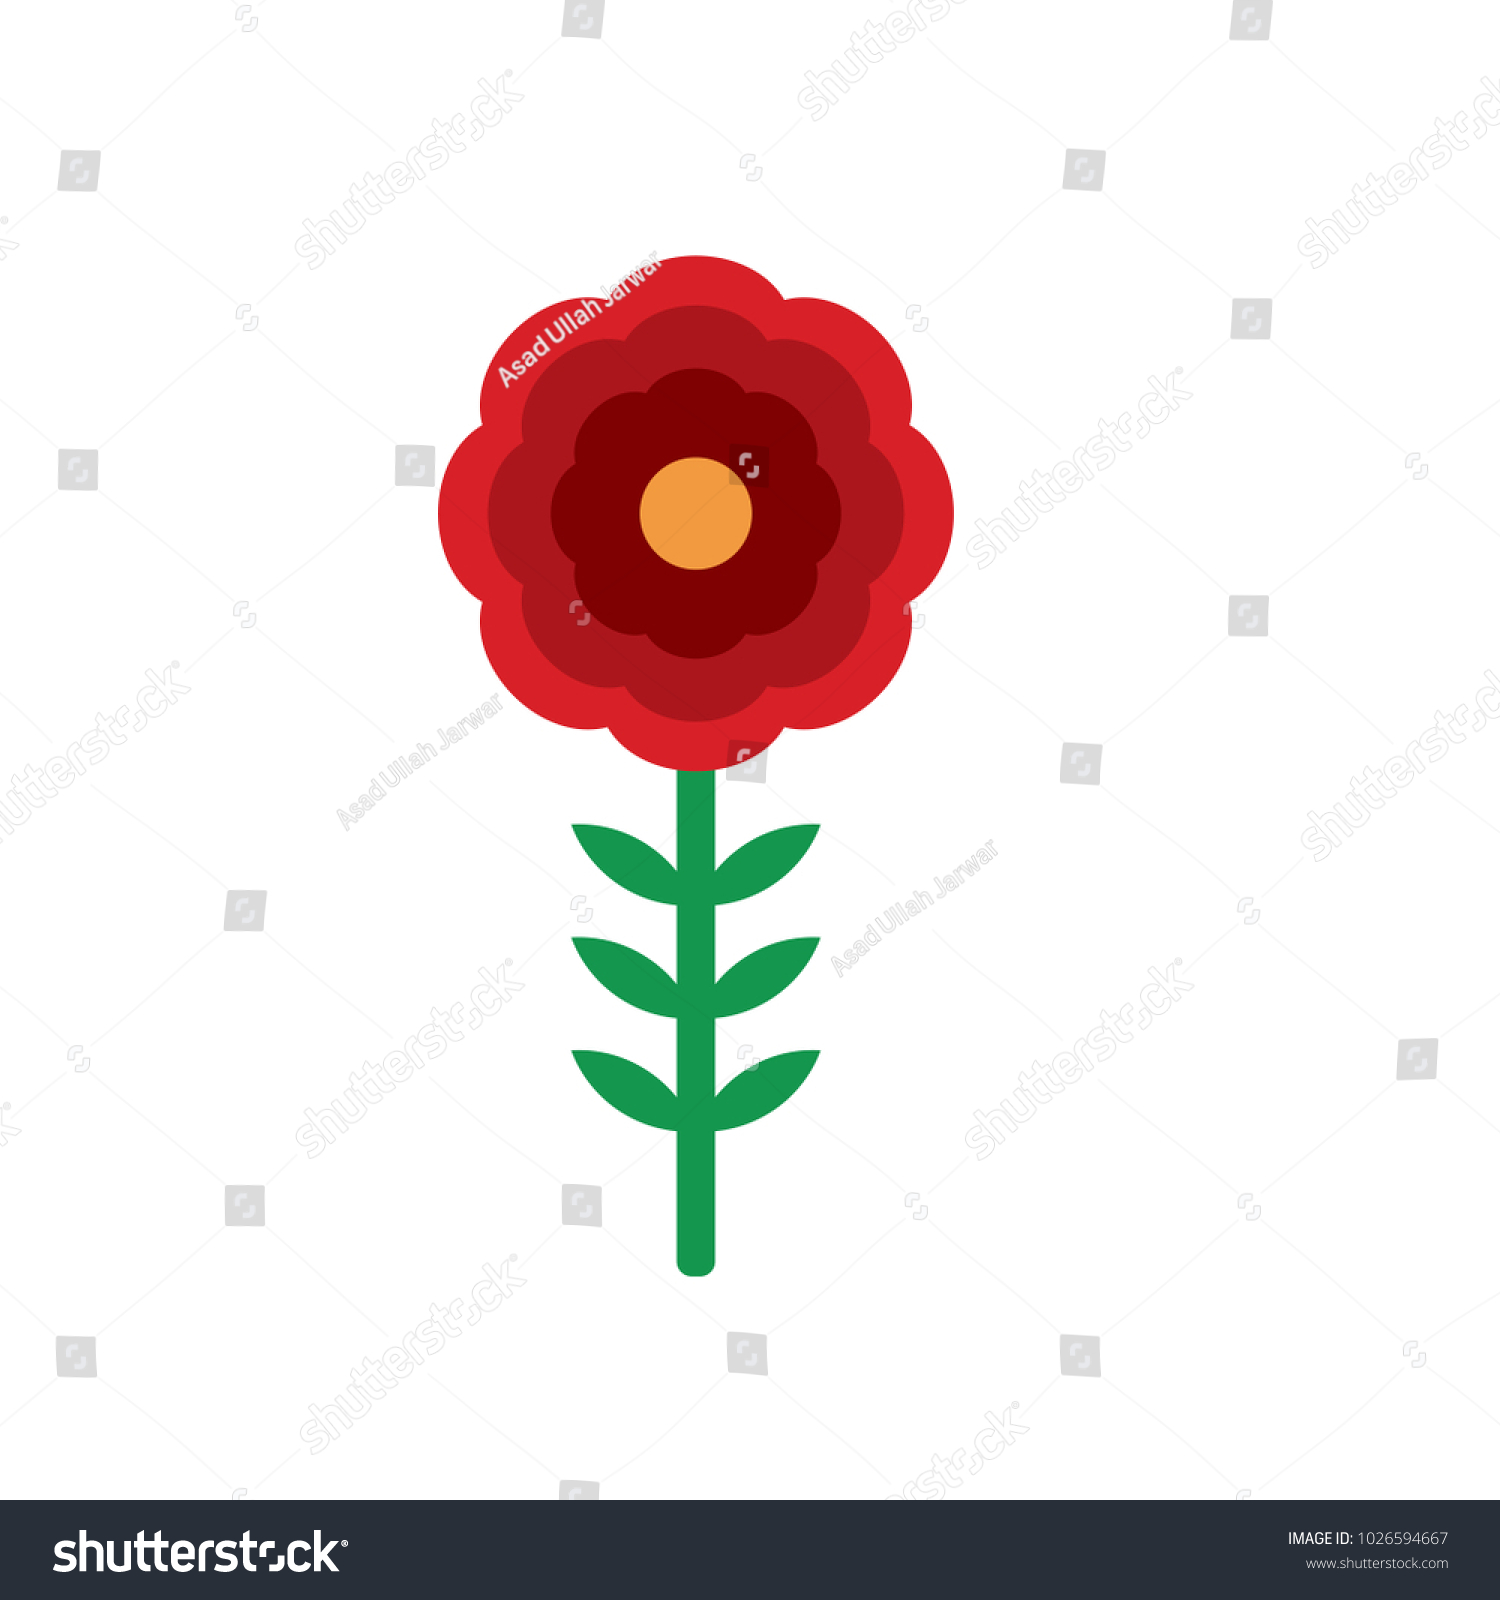 Flowers Used Show Love Sympathy Respect Stock Vector HD (Royalty ...